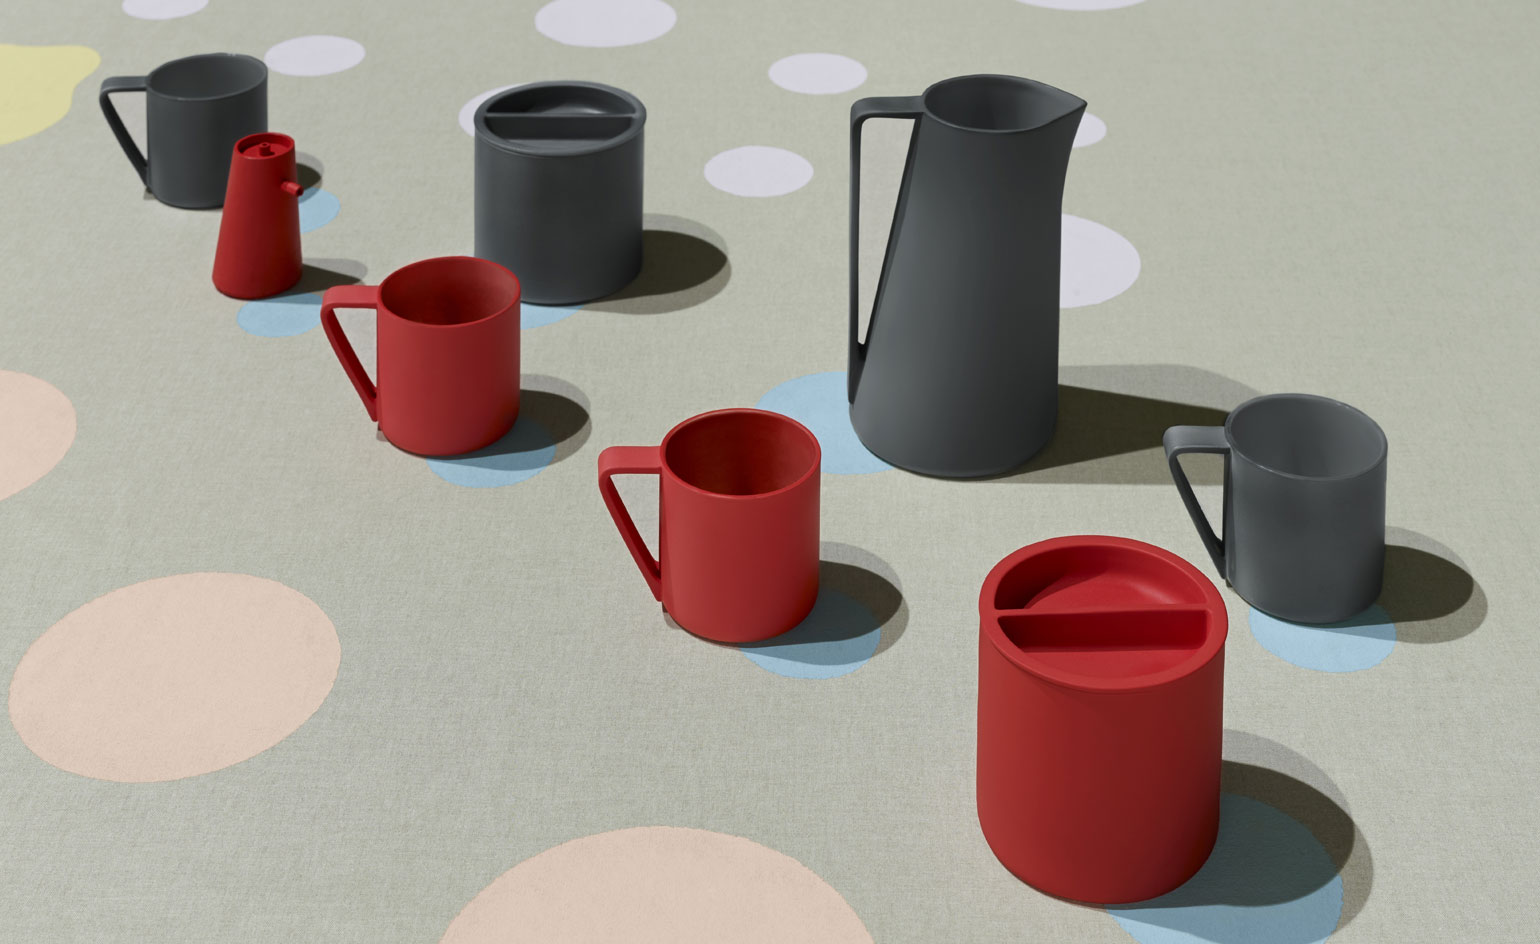 A New Brand Wants to Reinvent Traditional Japanese Porcelain